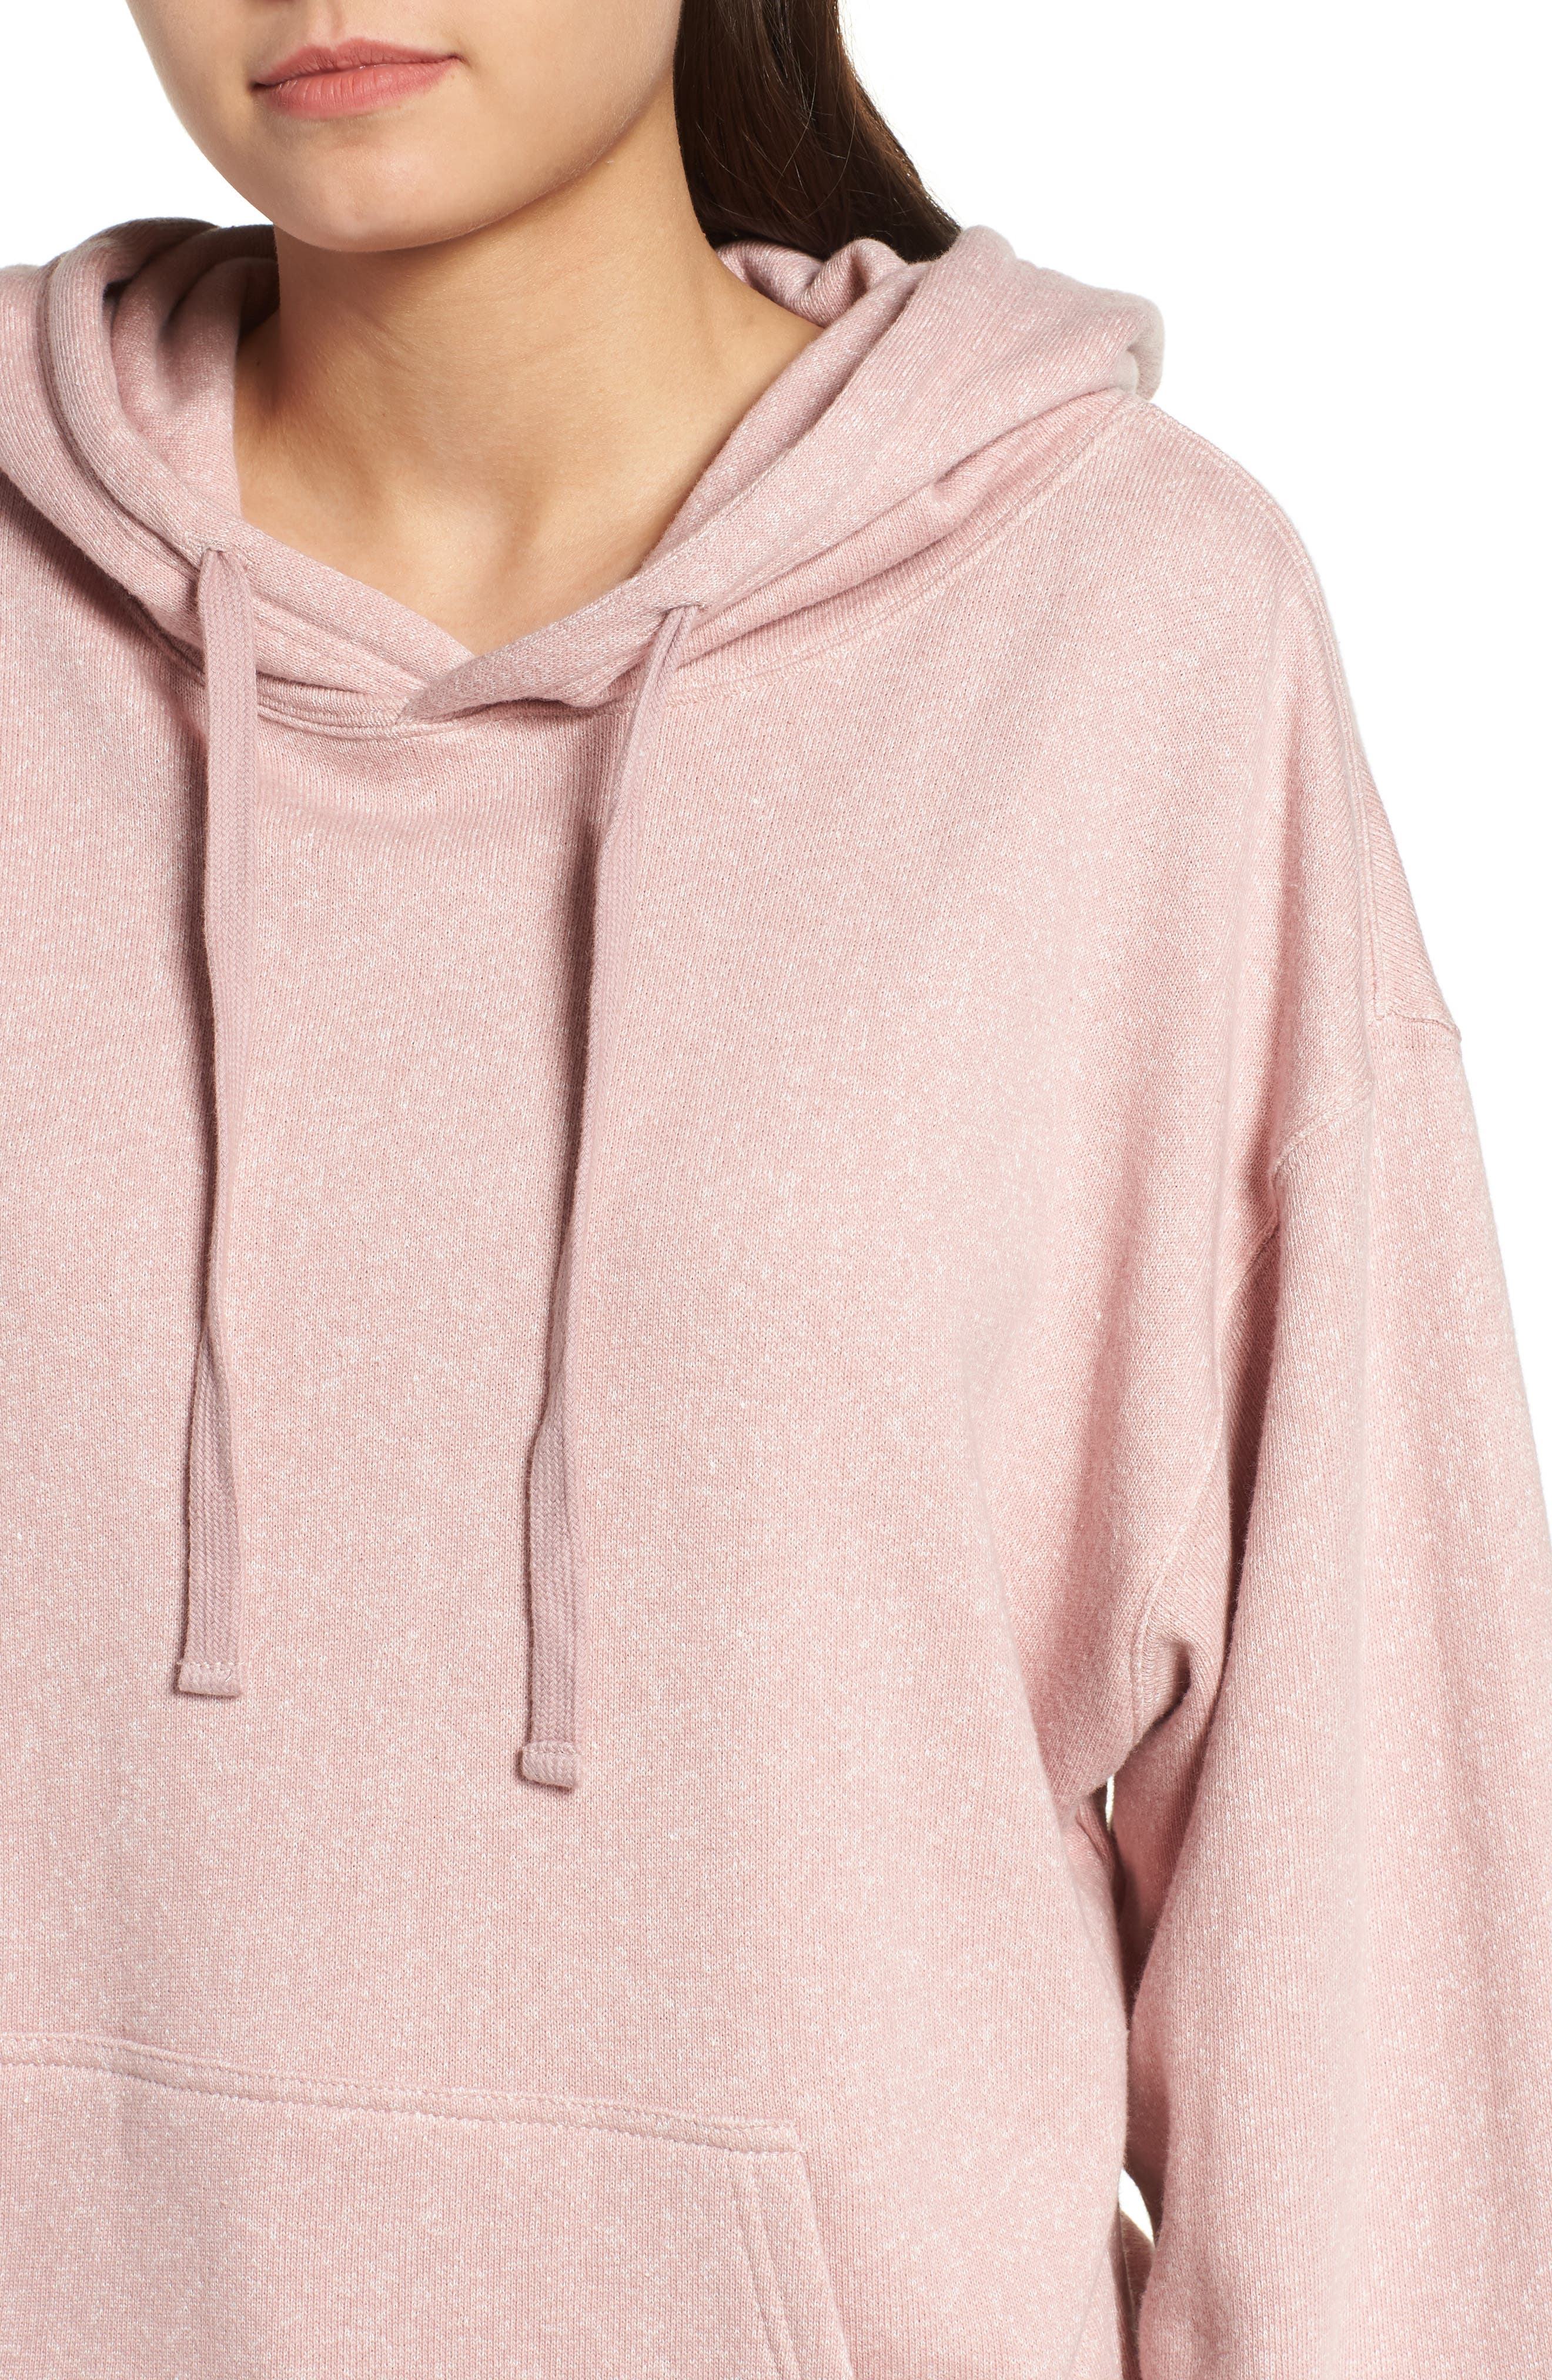 Shelbee Hoodie,                             Alternate thumbnail 4, color,                             DEAUVILLE MAUVE